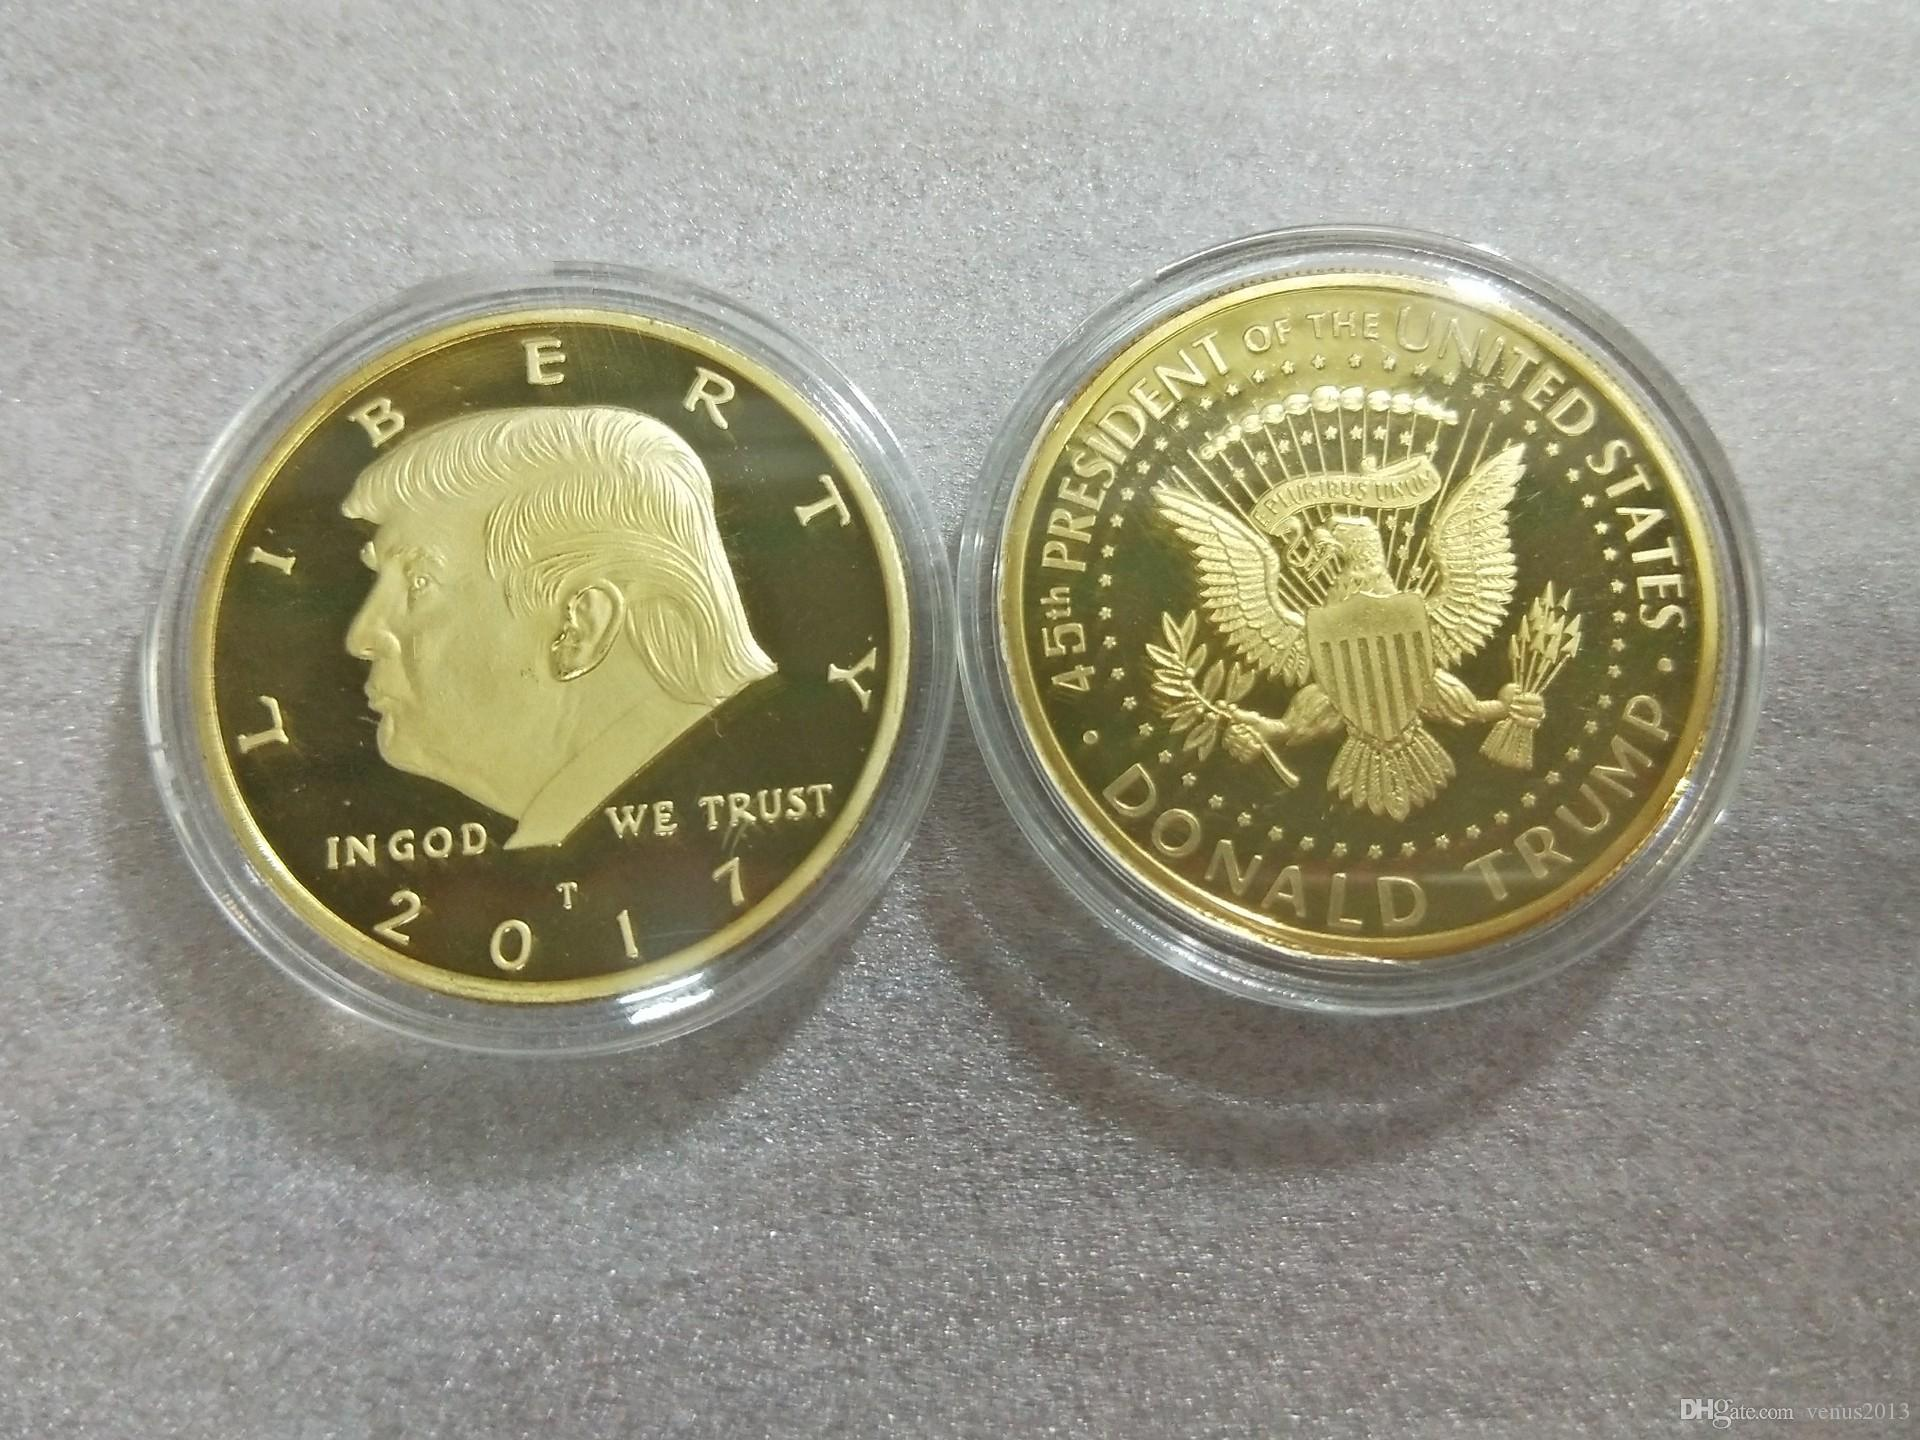 2019 Gold Silver Metal Craft Coin Badge American 45th President Donald  Trump Sculpture Non-currency Commemorative Coin EAGLE Collection Coin